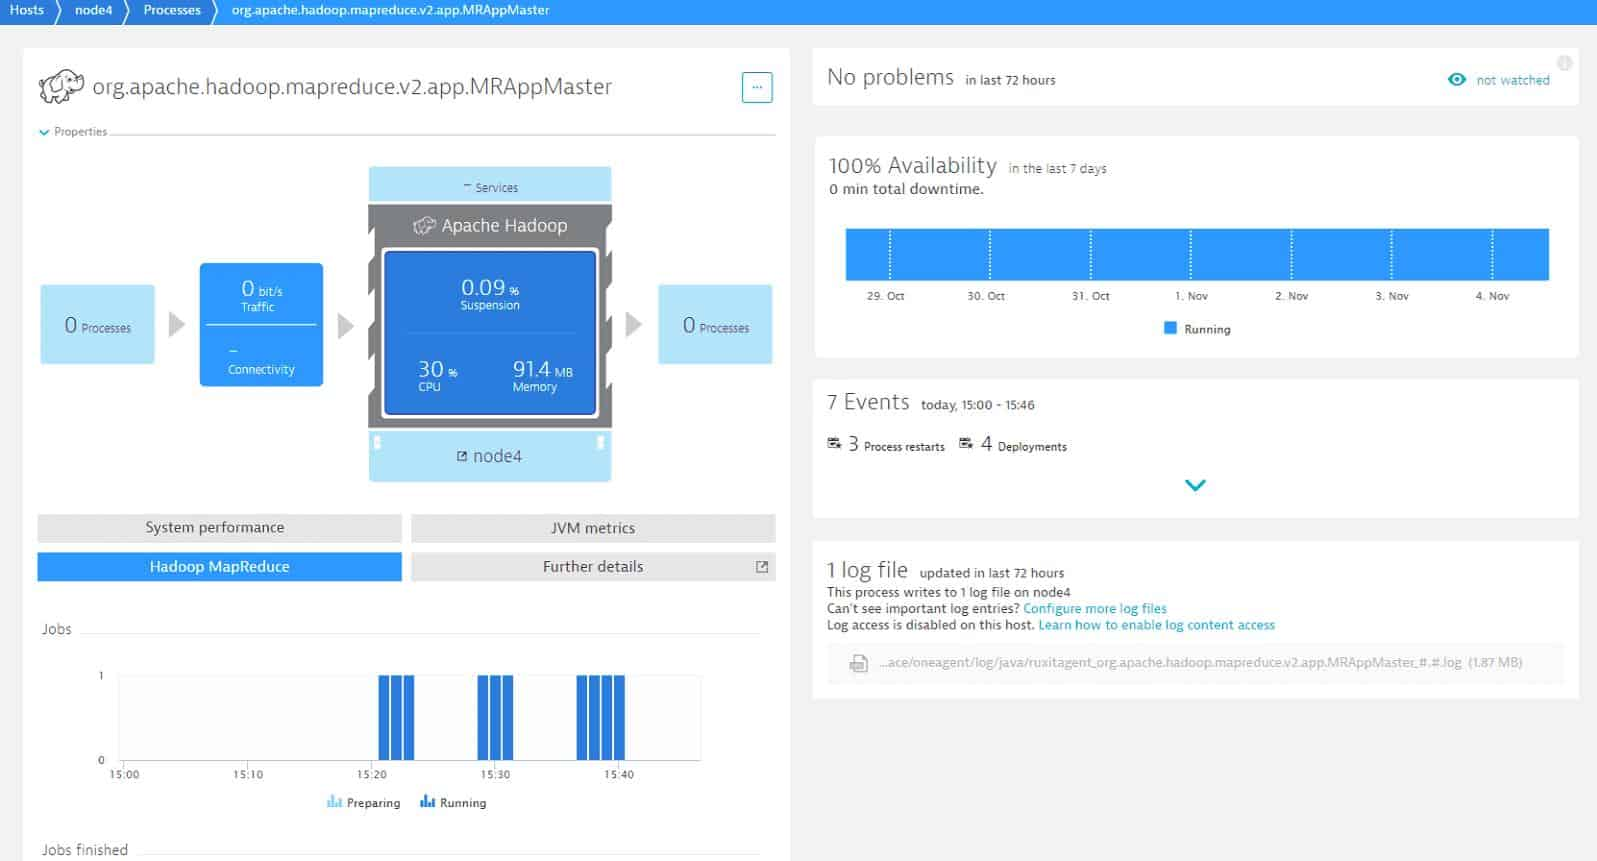 Dynatrace Apache Hadoop monitoring dashboard